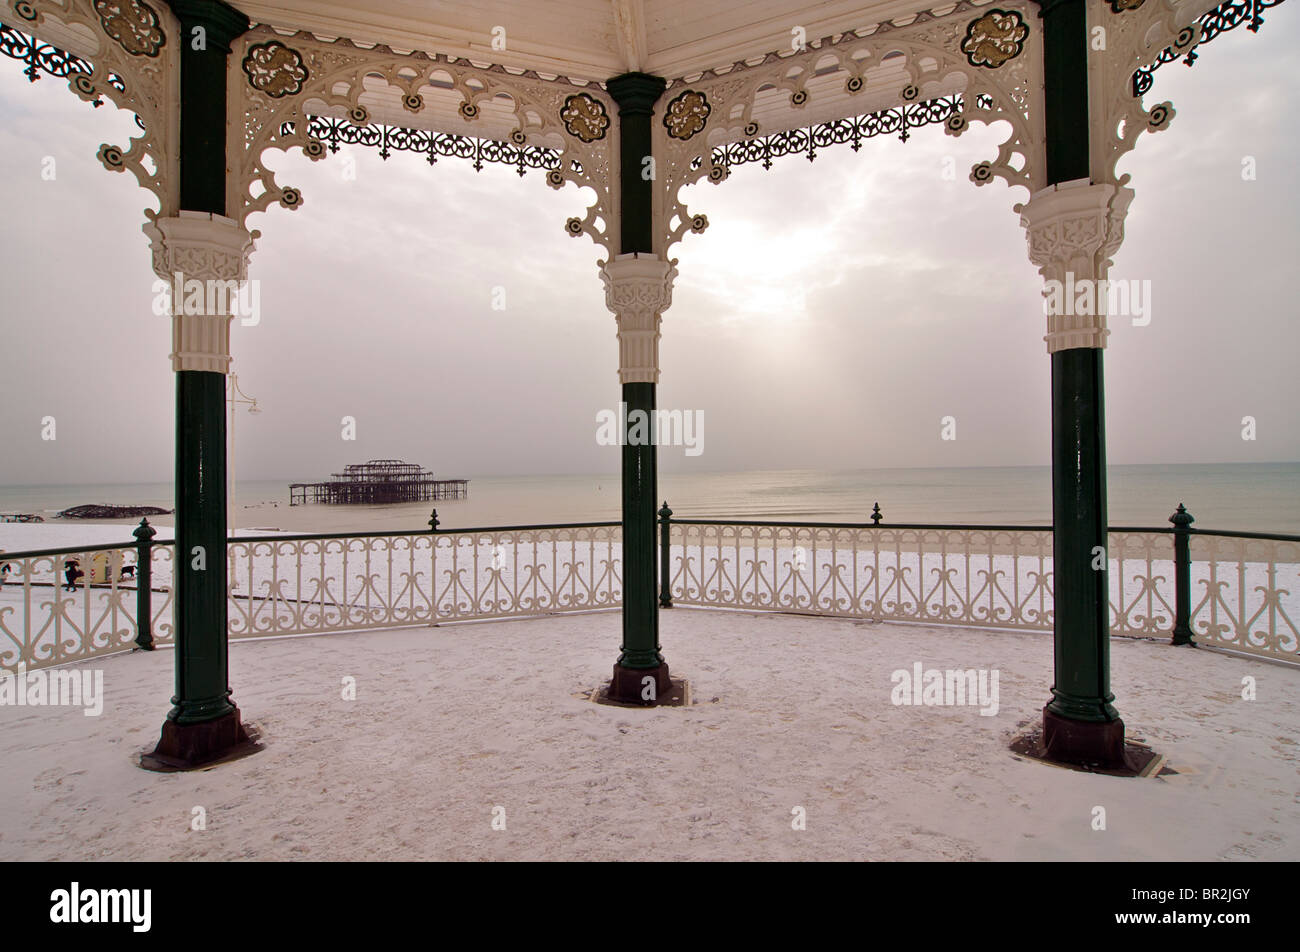 Brighton beach and bandstand in snow. Brighton, East Sussex, England - Stock Image